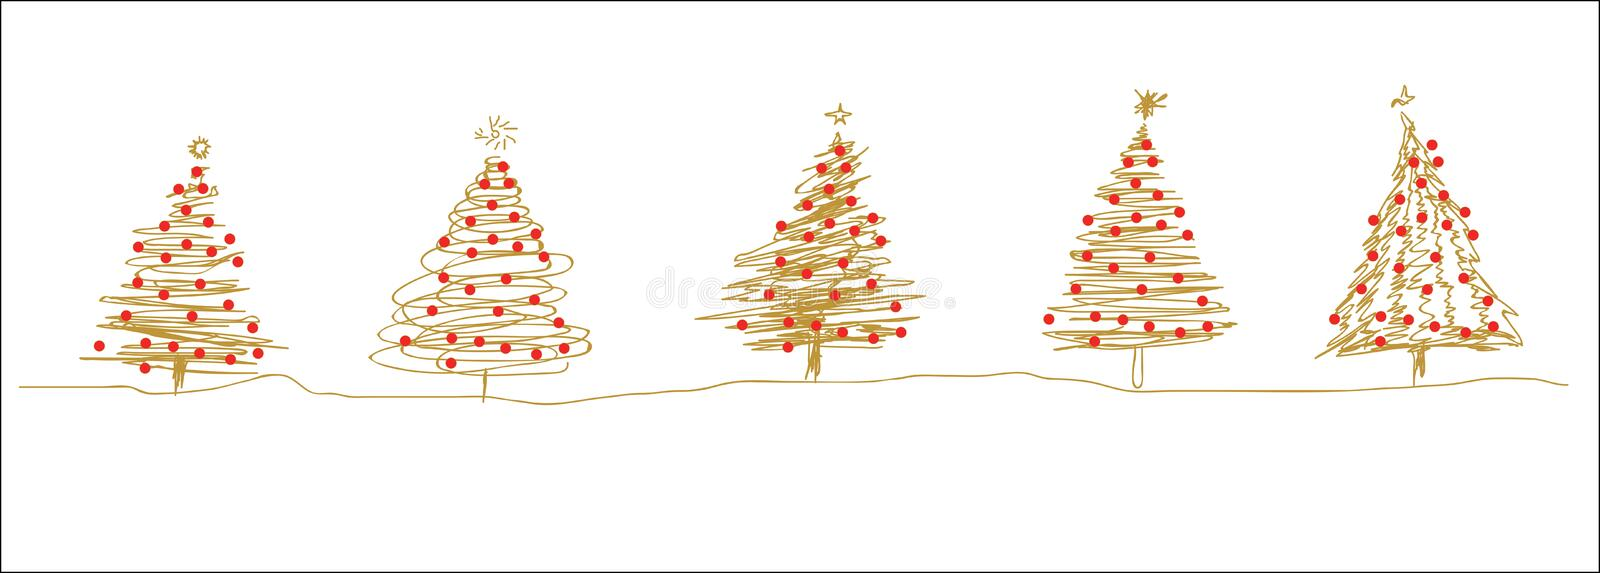 Gold red christmas tree line sketches in a row vector illustration